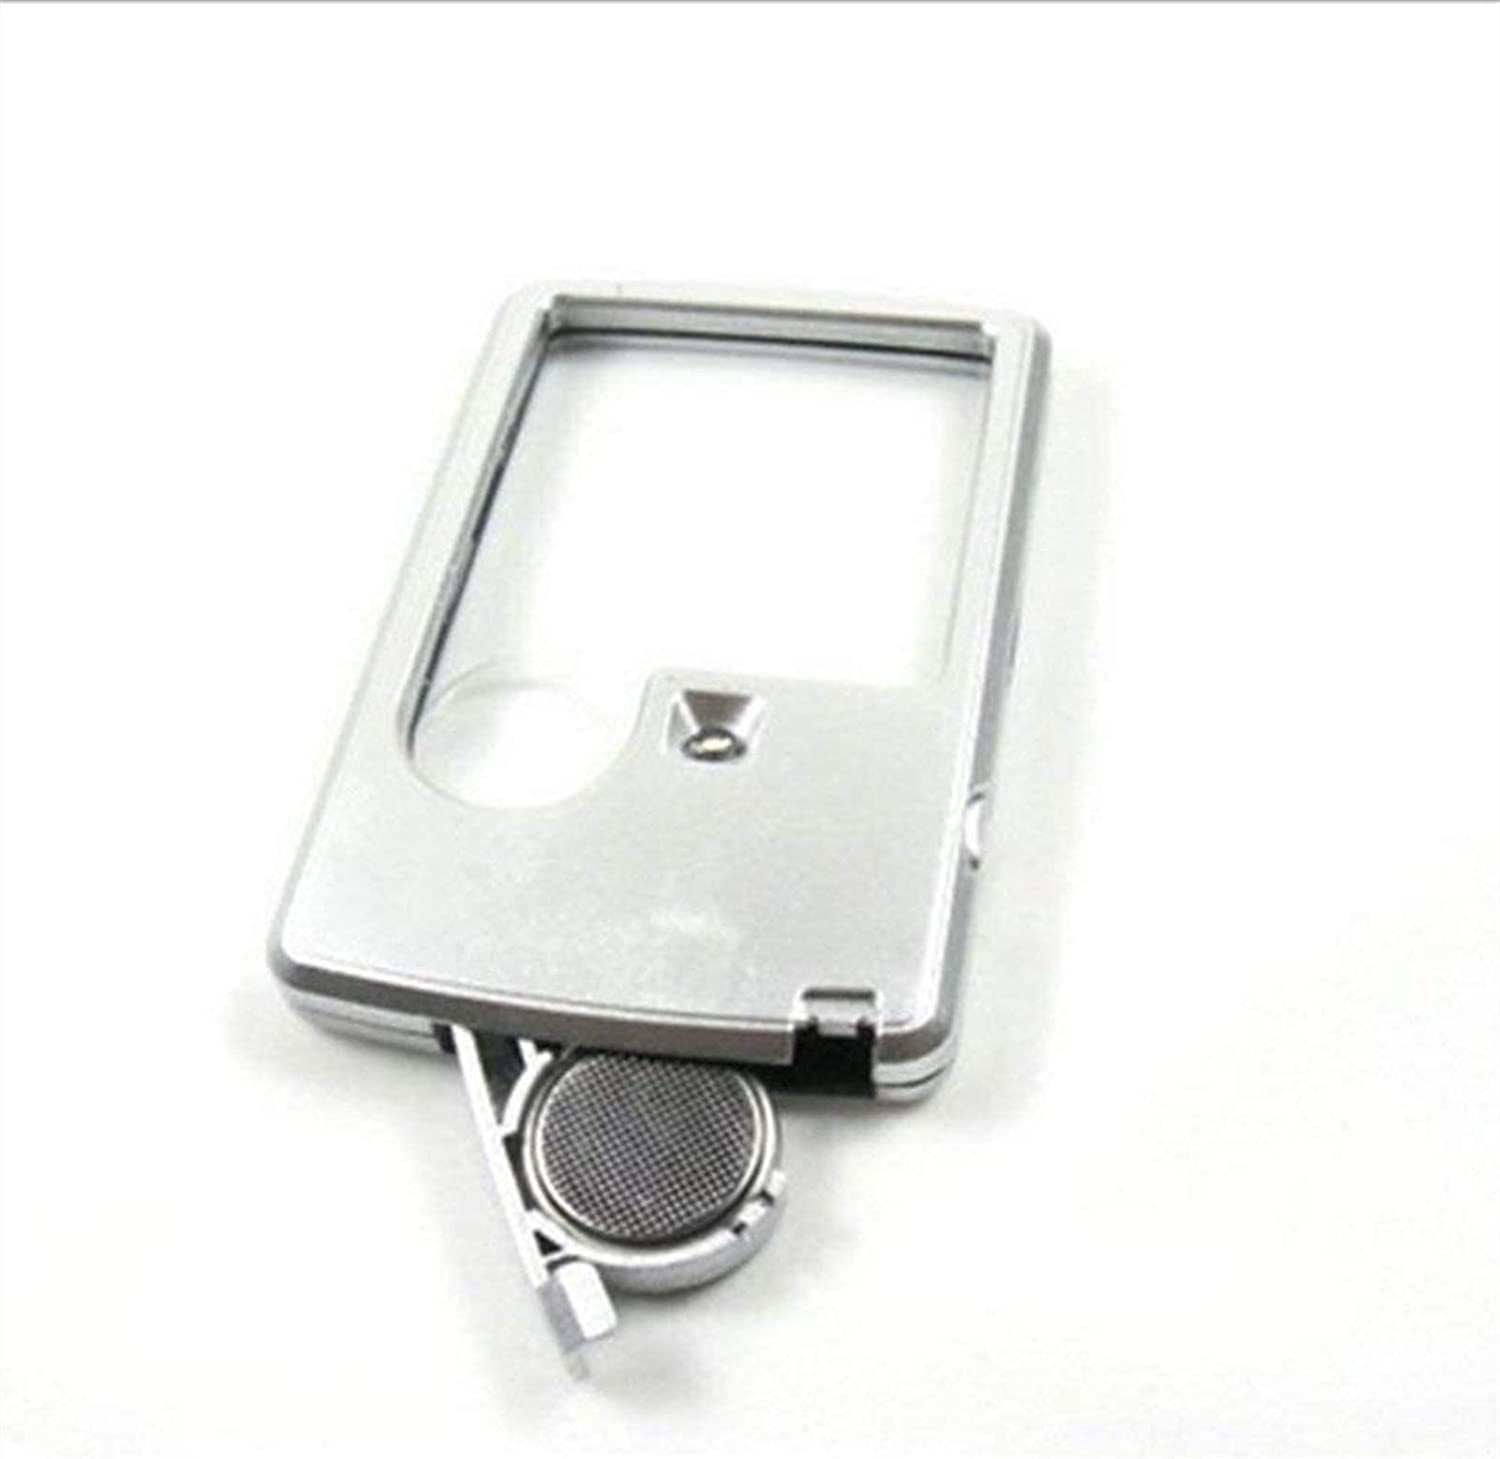 CMMWA Portable Reading Magnifier Department store Ranking TOP6 3 6x Glass Porta Square Lens HD